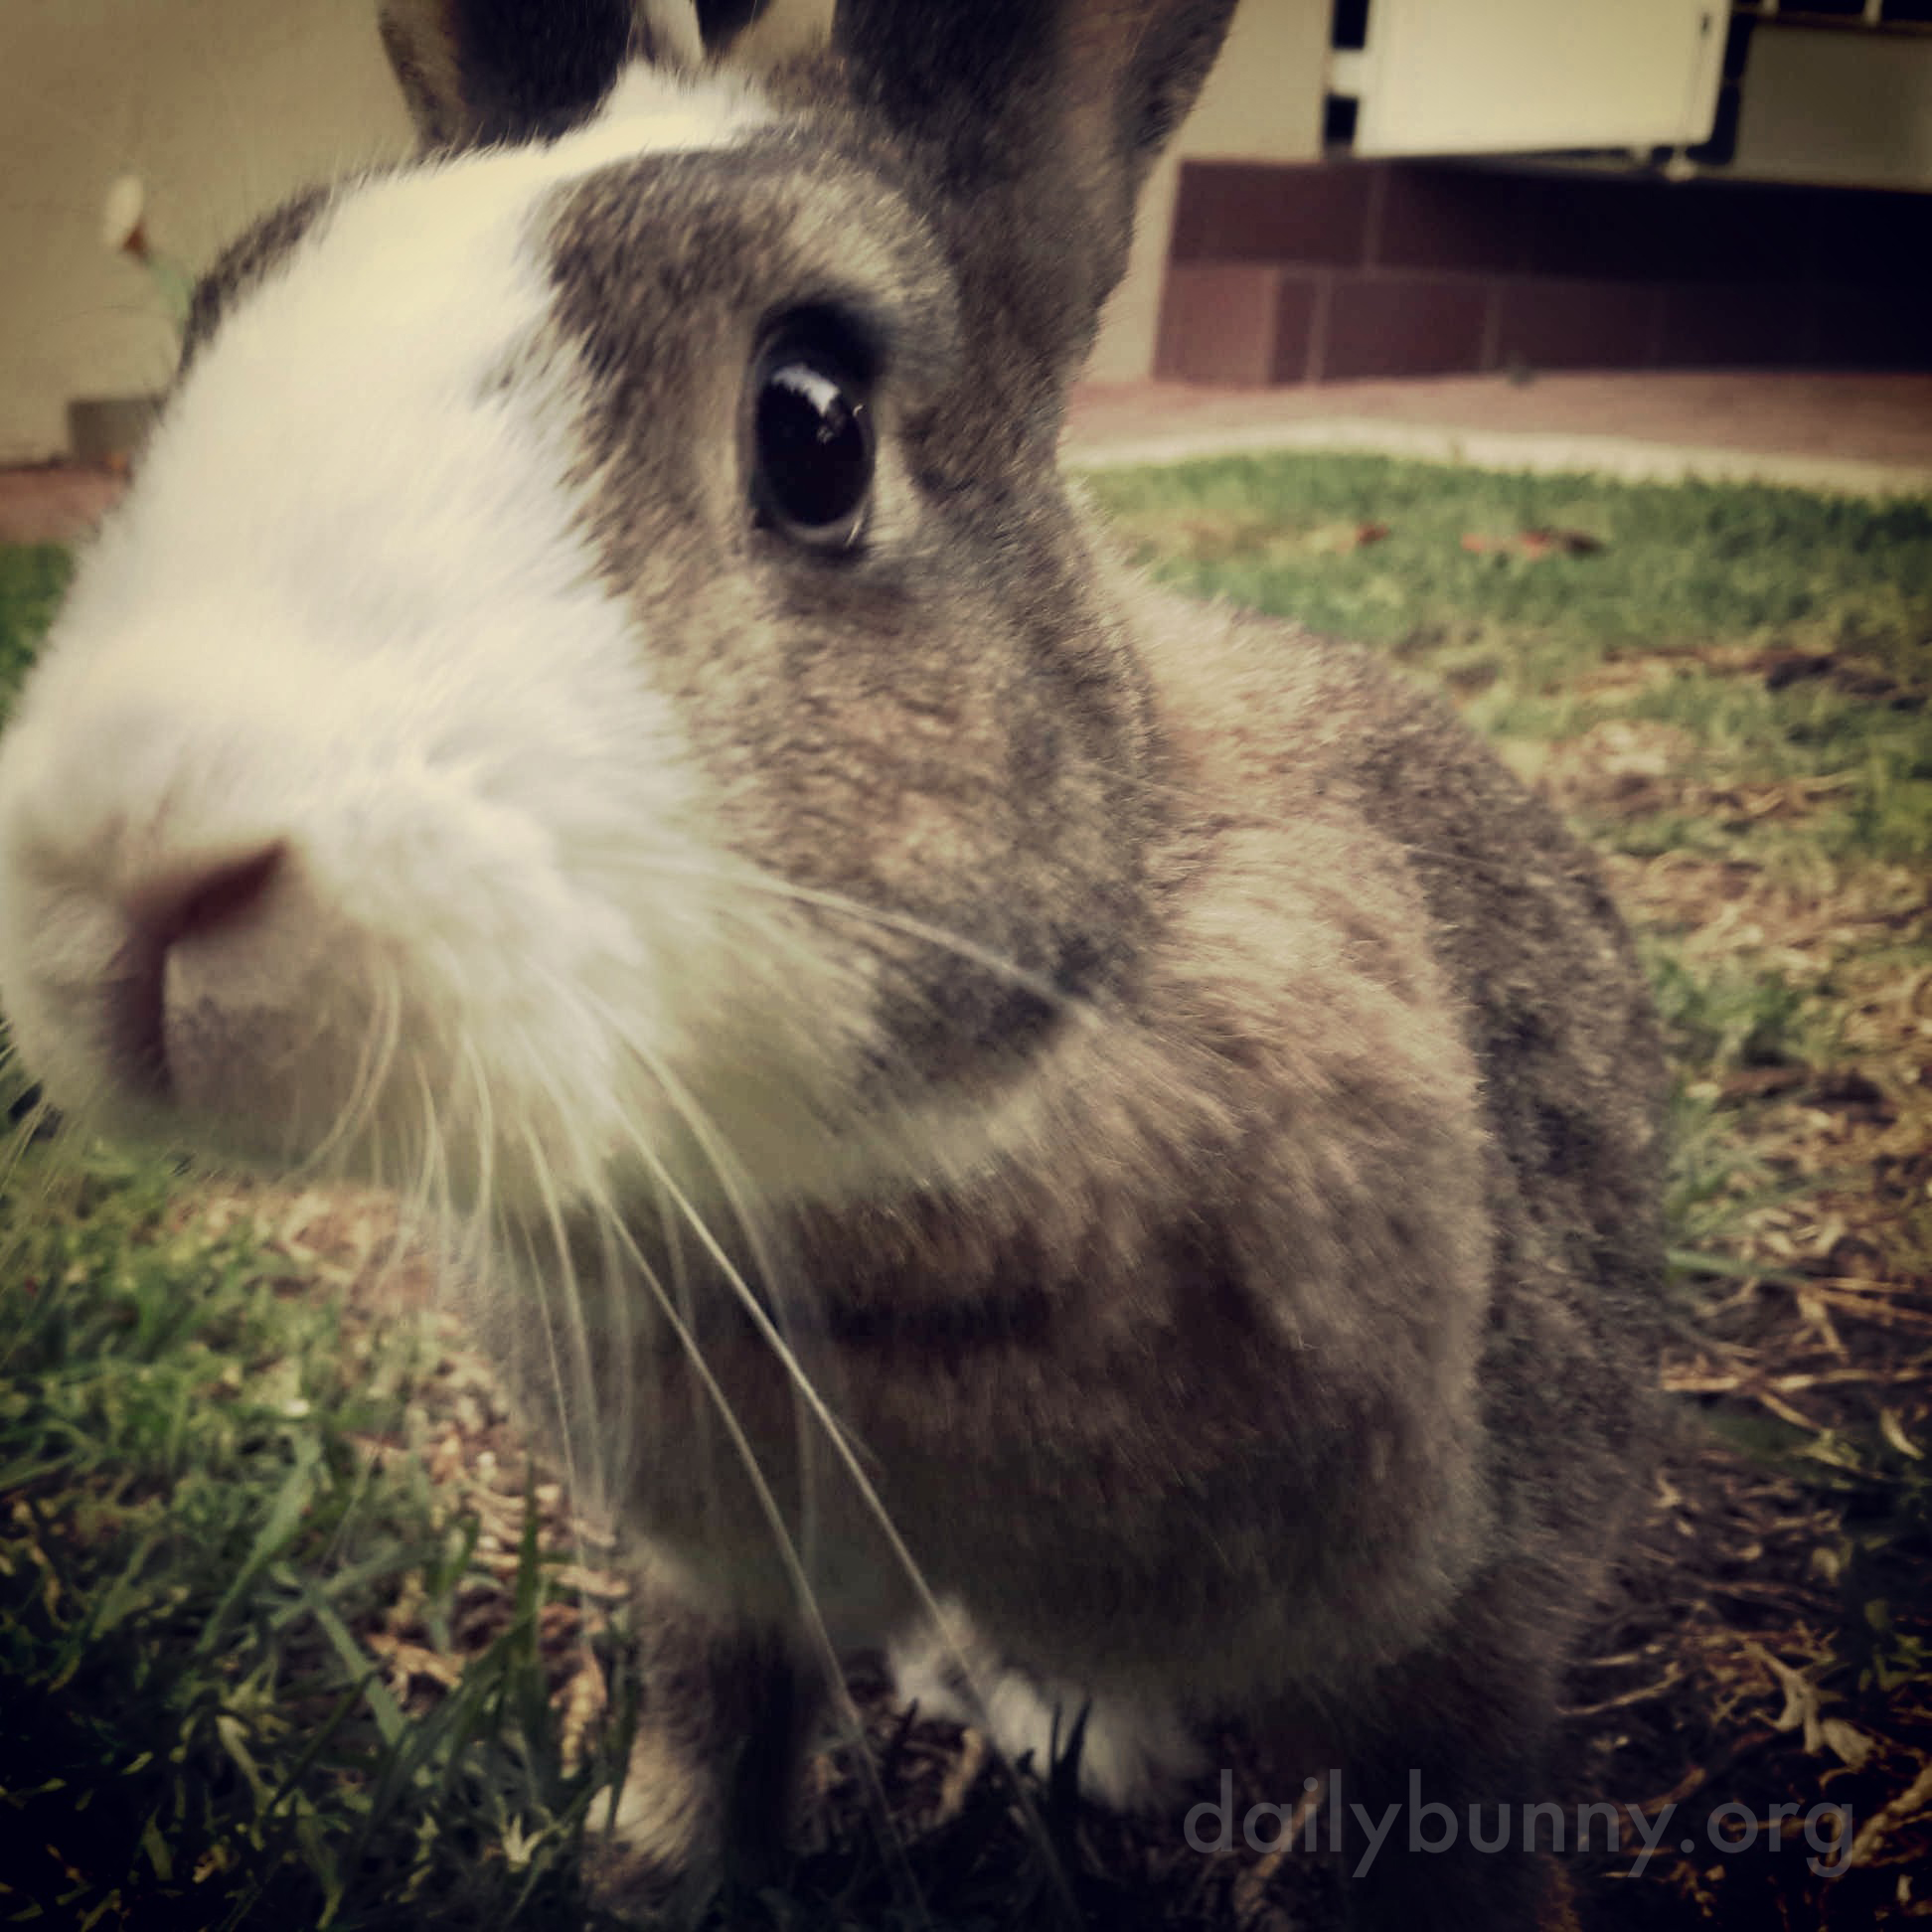 Bunny Seems More Interested in the Camera Than in the Yard